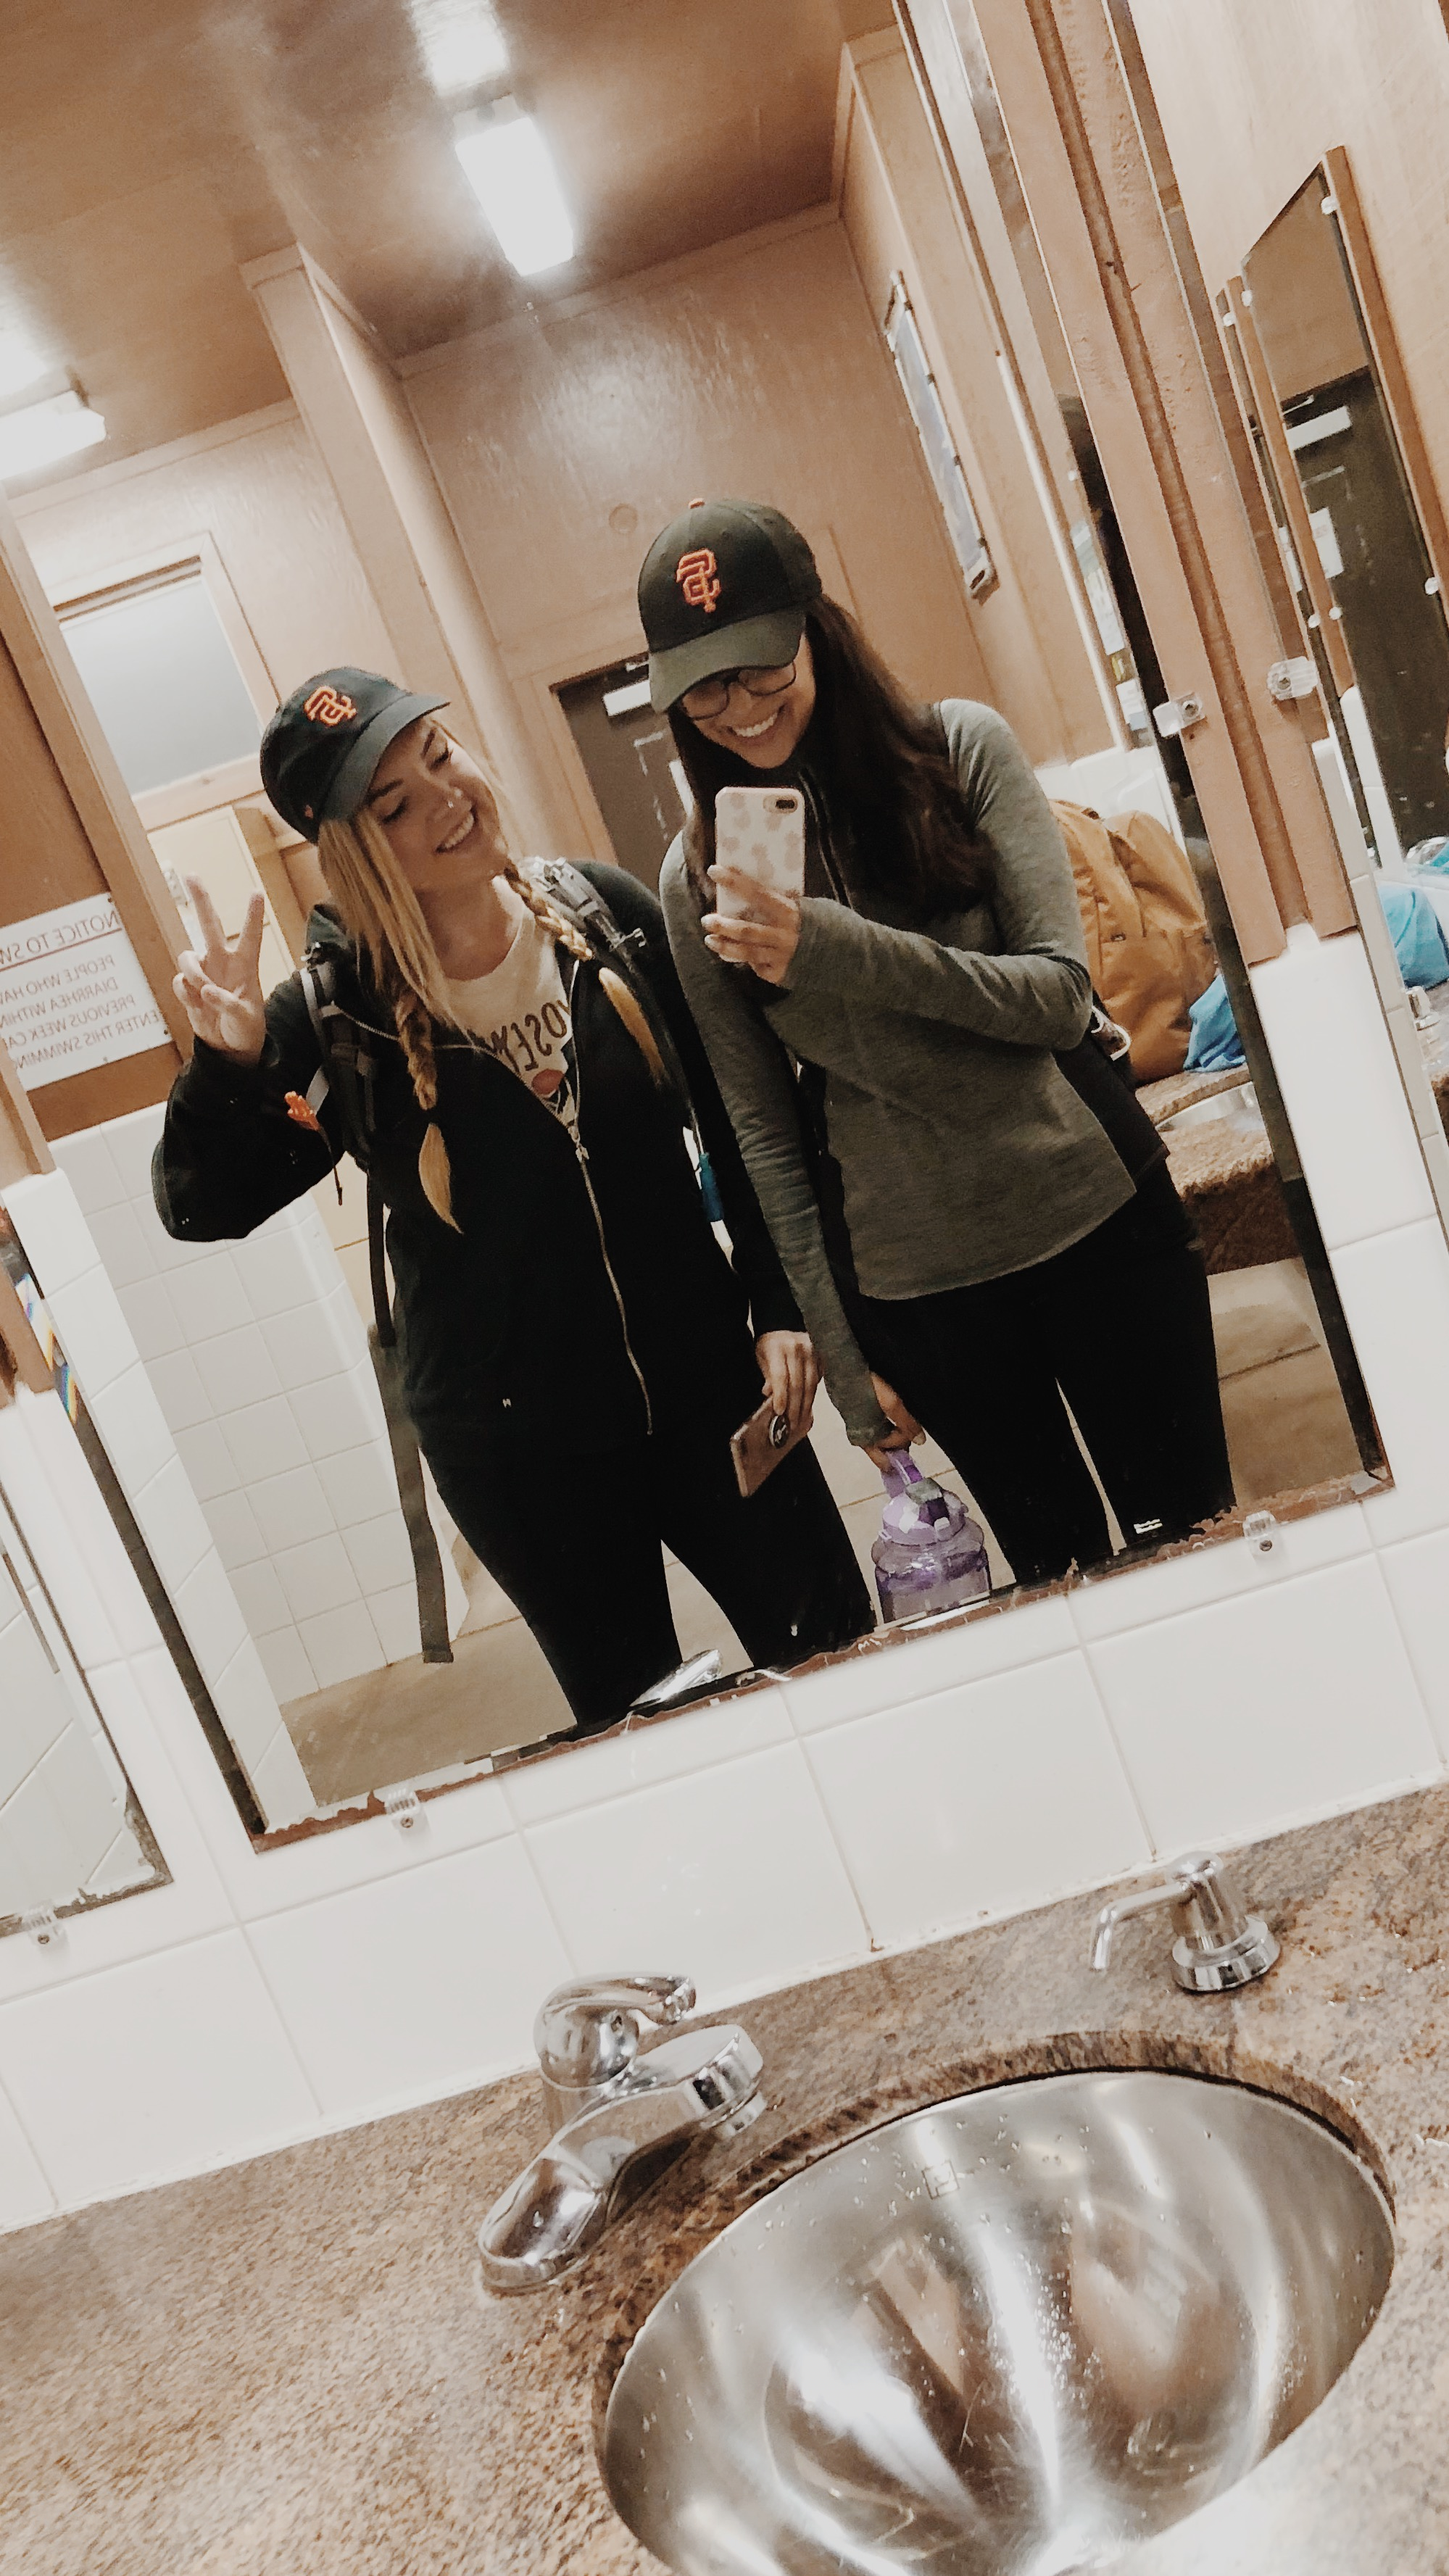 all smiles at the beginning of our trail at the Half Dome Village bathroom before our smiles disappeared lollll